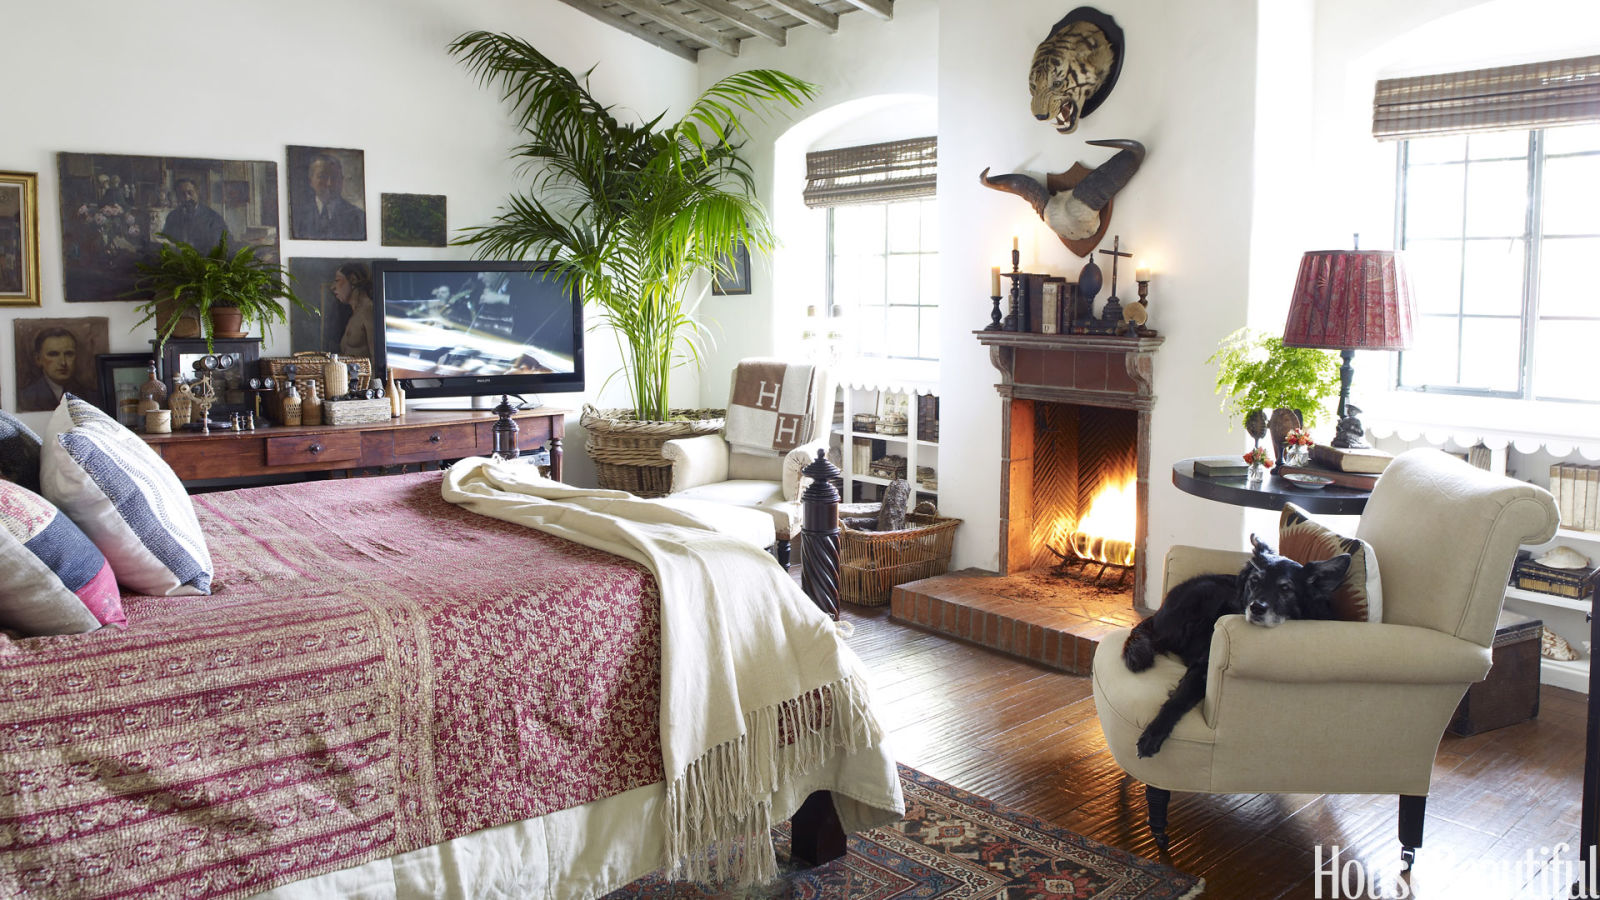 25 cozy bedroom ideas how to make your bedroom feel cozy